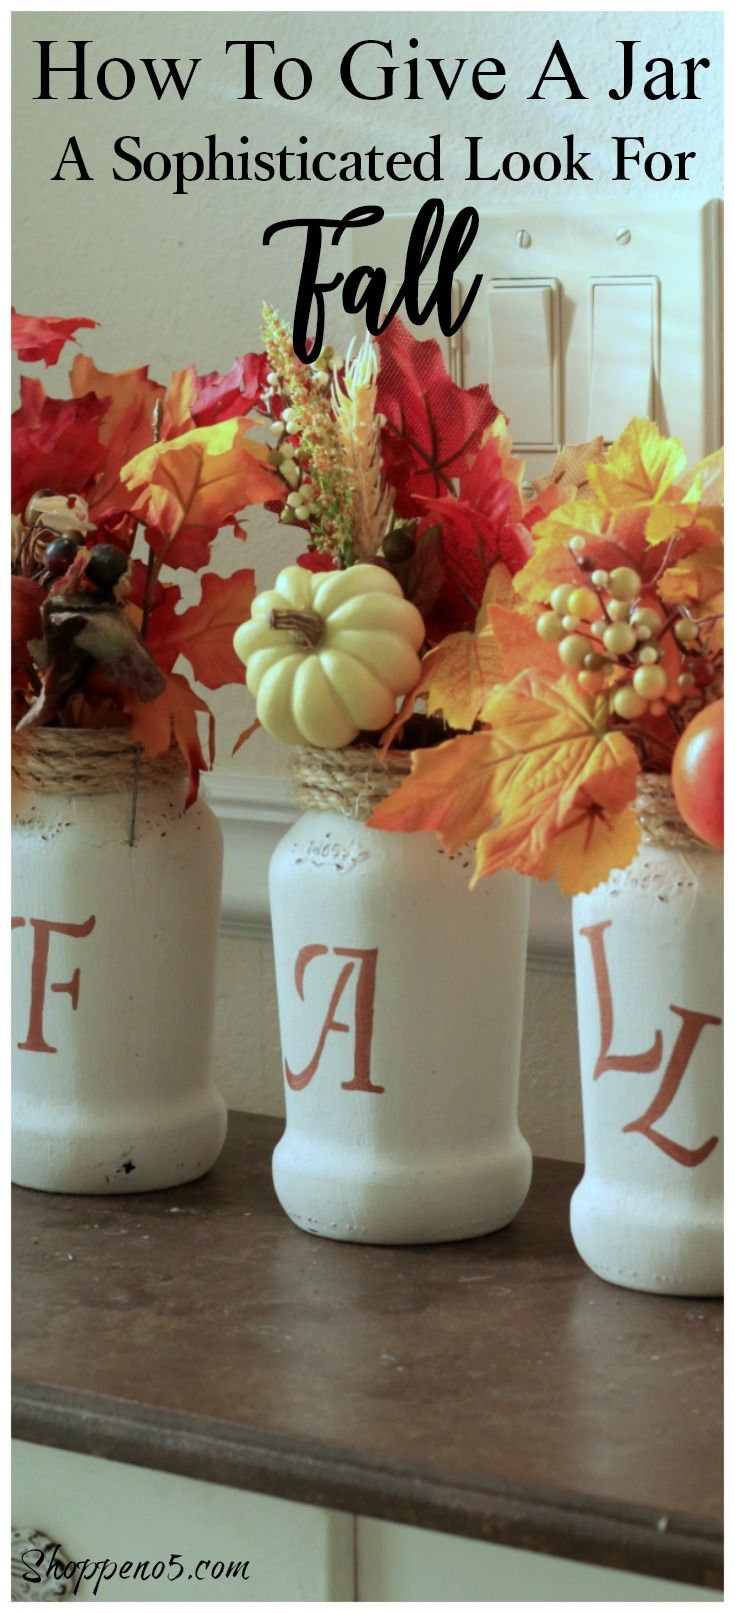 816 best Fall, Halloween  Thanksgiving images on Pinterest - Kid Friendly Halloween Decorations